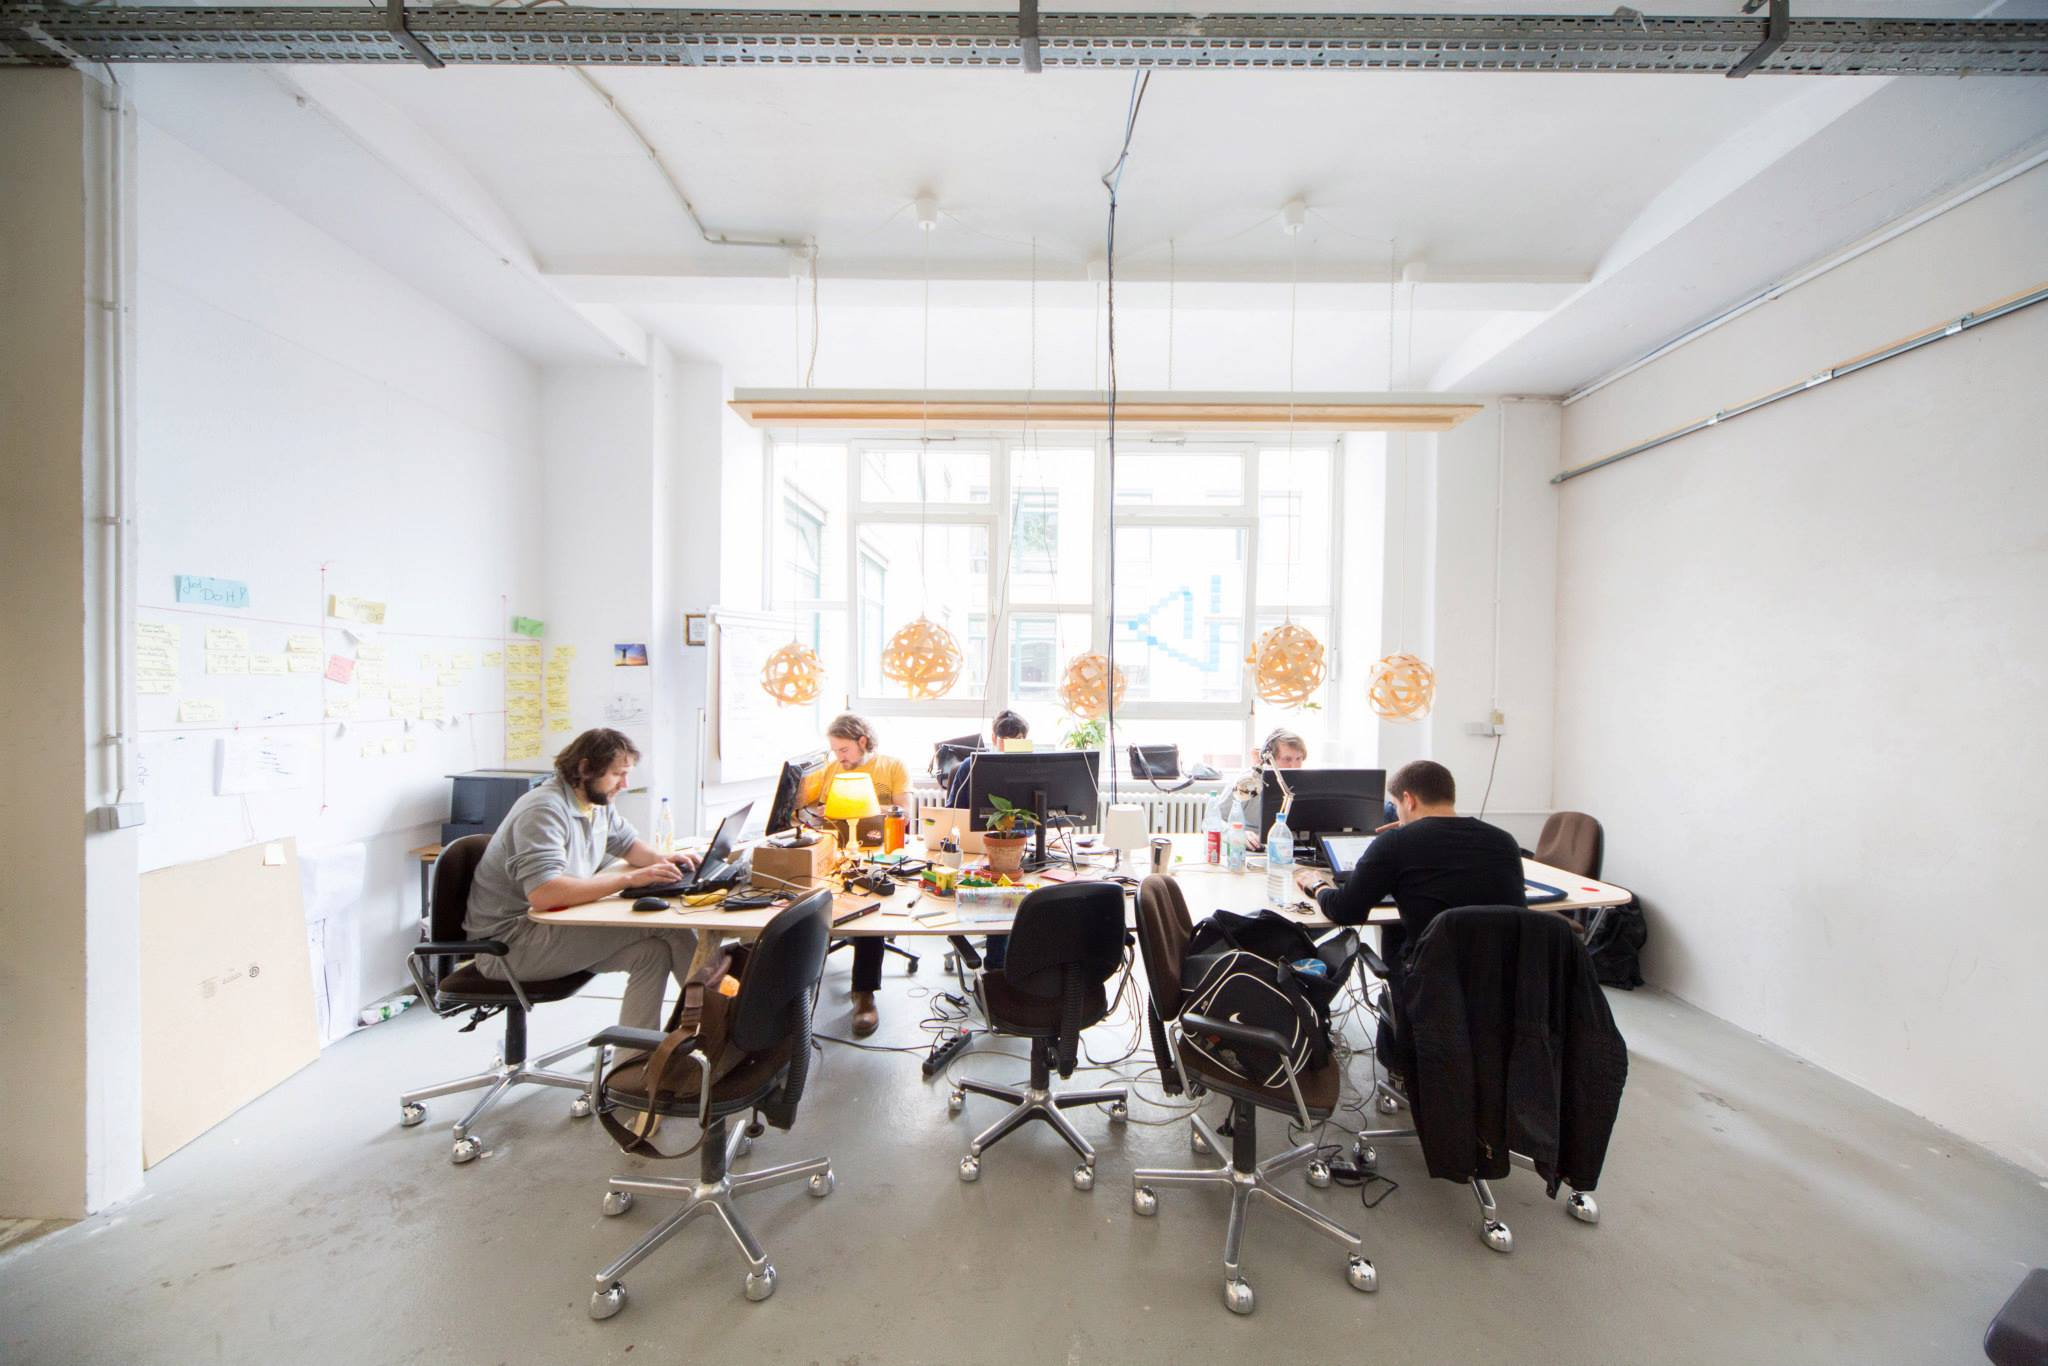 Galeria Echo Kielce W rza together with Co Working In Berlin Betahaus likewise Novartis C us Diener Diener Office Building Basel moreover Ut Gardens Visitor And Education Center moreover 34536. on open space office design